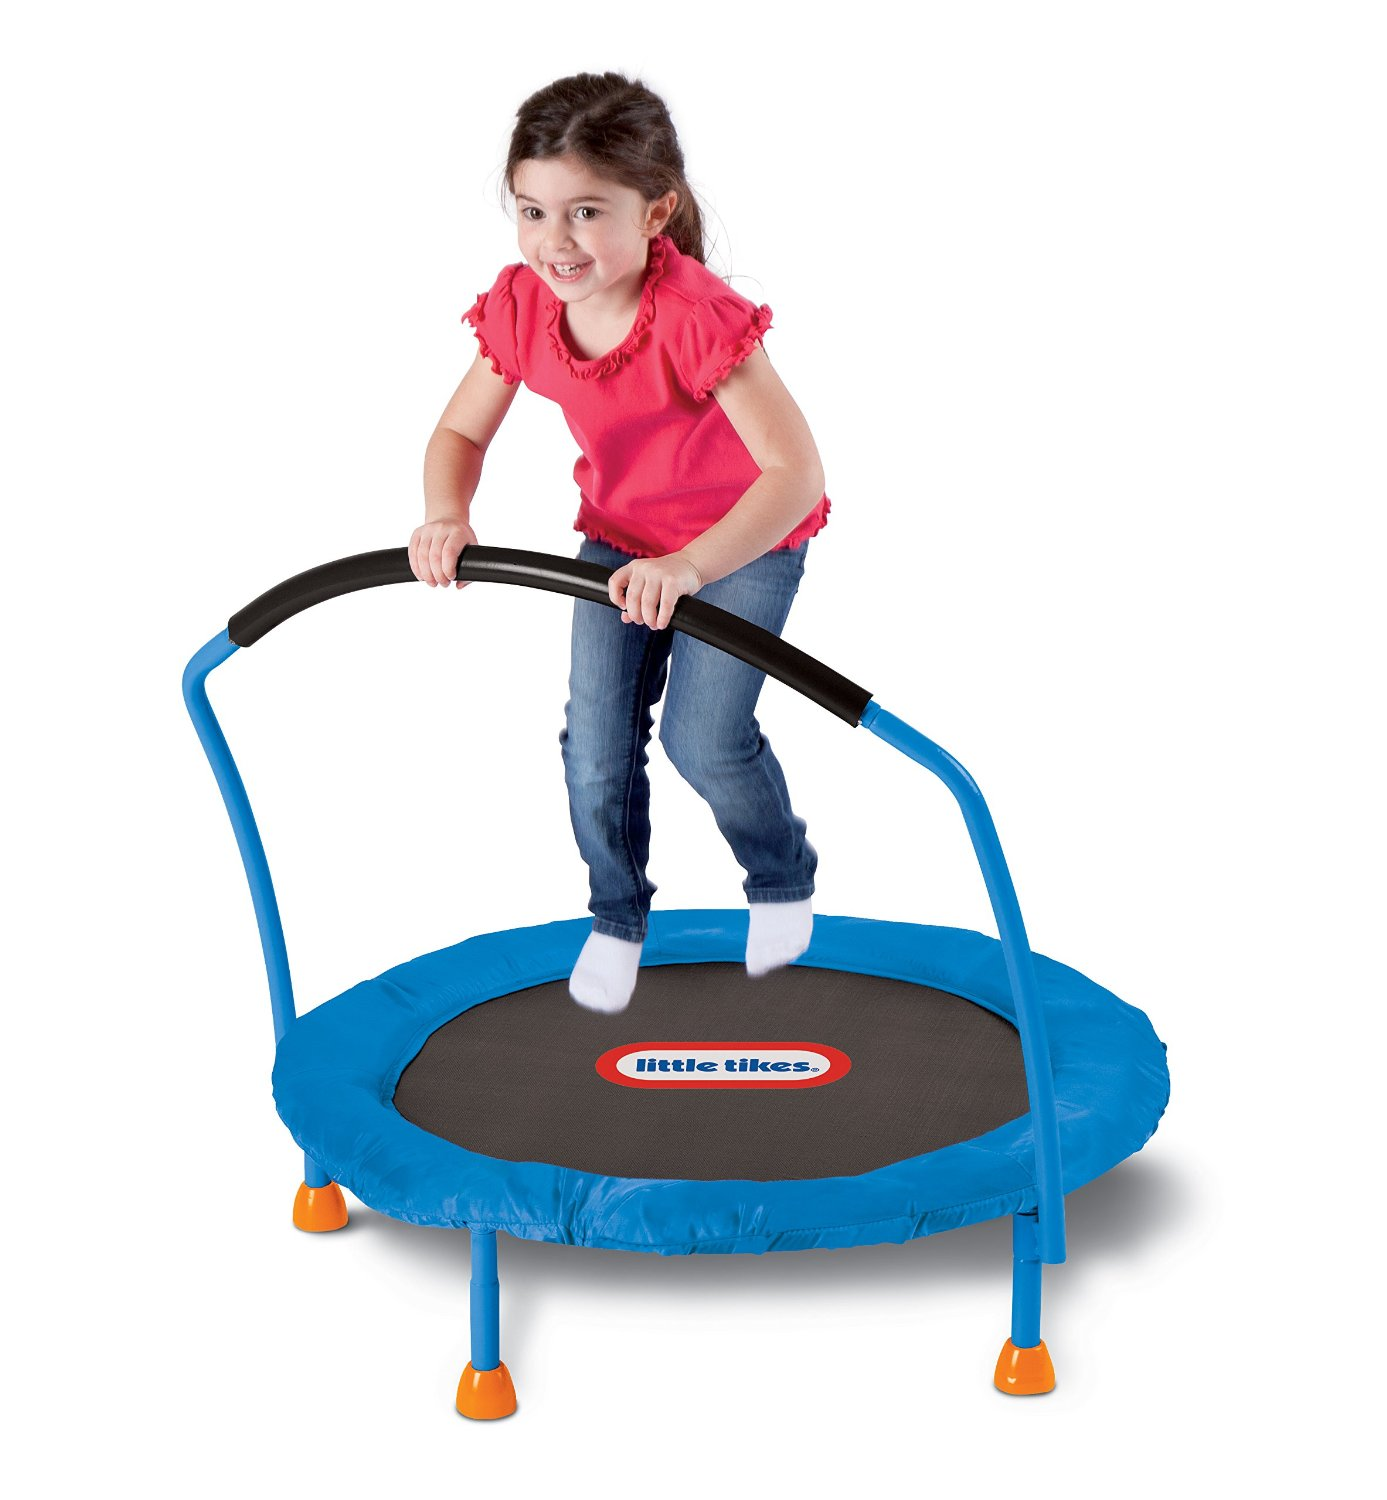 Top 10 Best Toddler Trampoline Reviews -- Your Guide (2018)